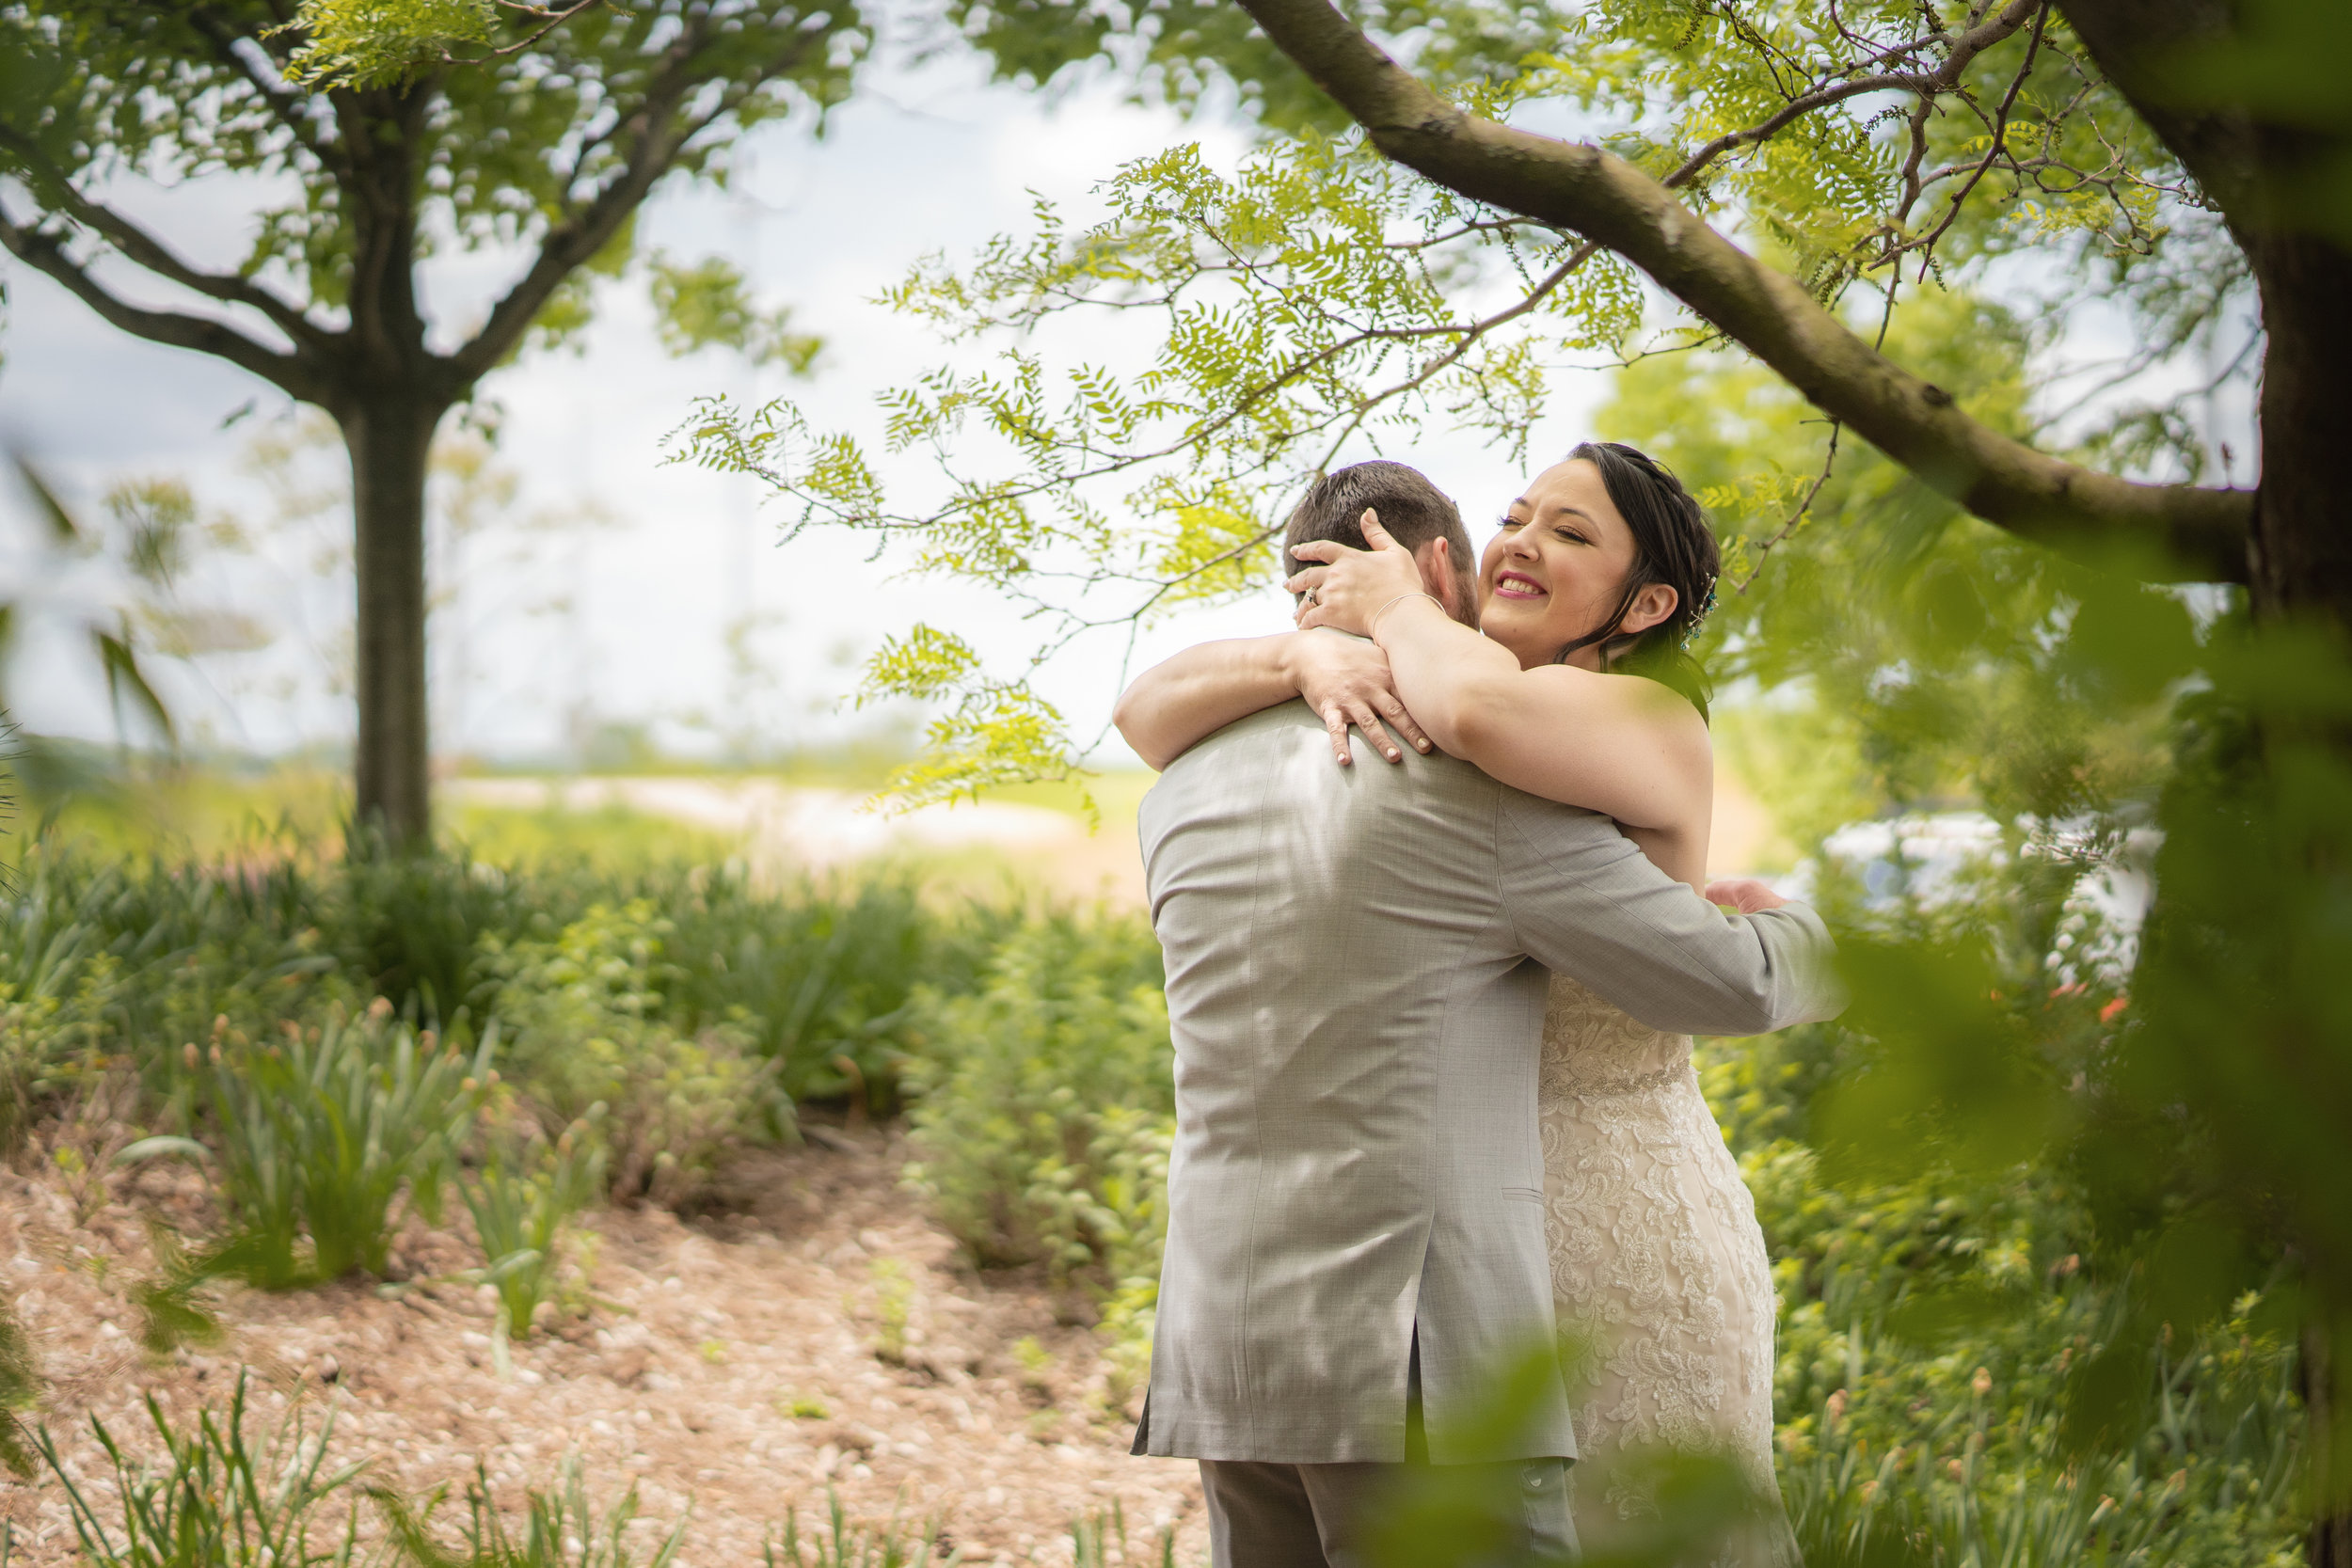 bride-groom-hugging-and-embracing-outdoors.jpg